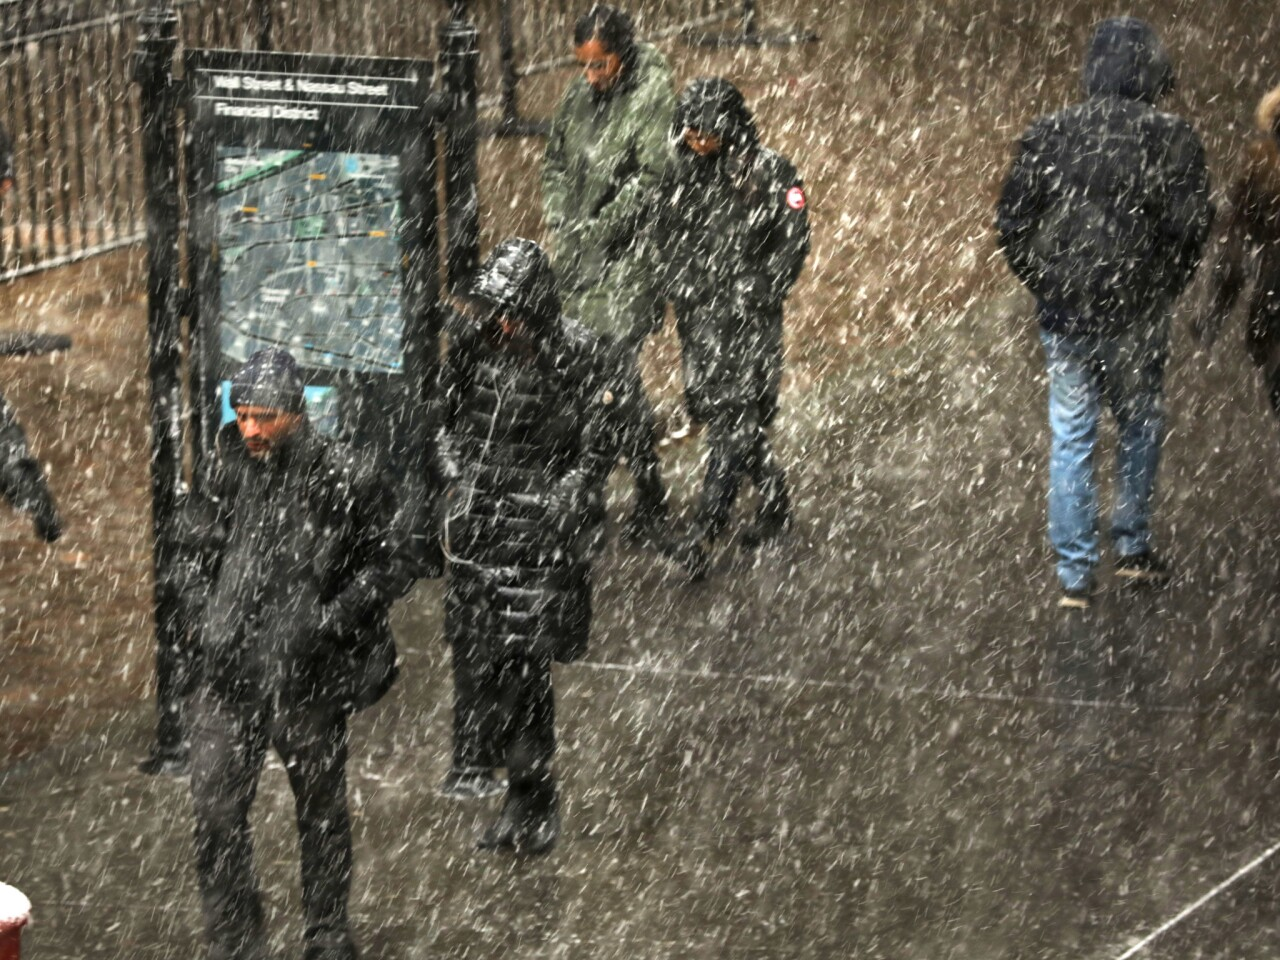 People walk through the snow in lower Manhattan as extremely cold temperatures are predicted for New York City in the coming days as a Polar Vortex, which is now over parts of the midwest, heads towards the region.